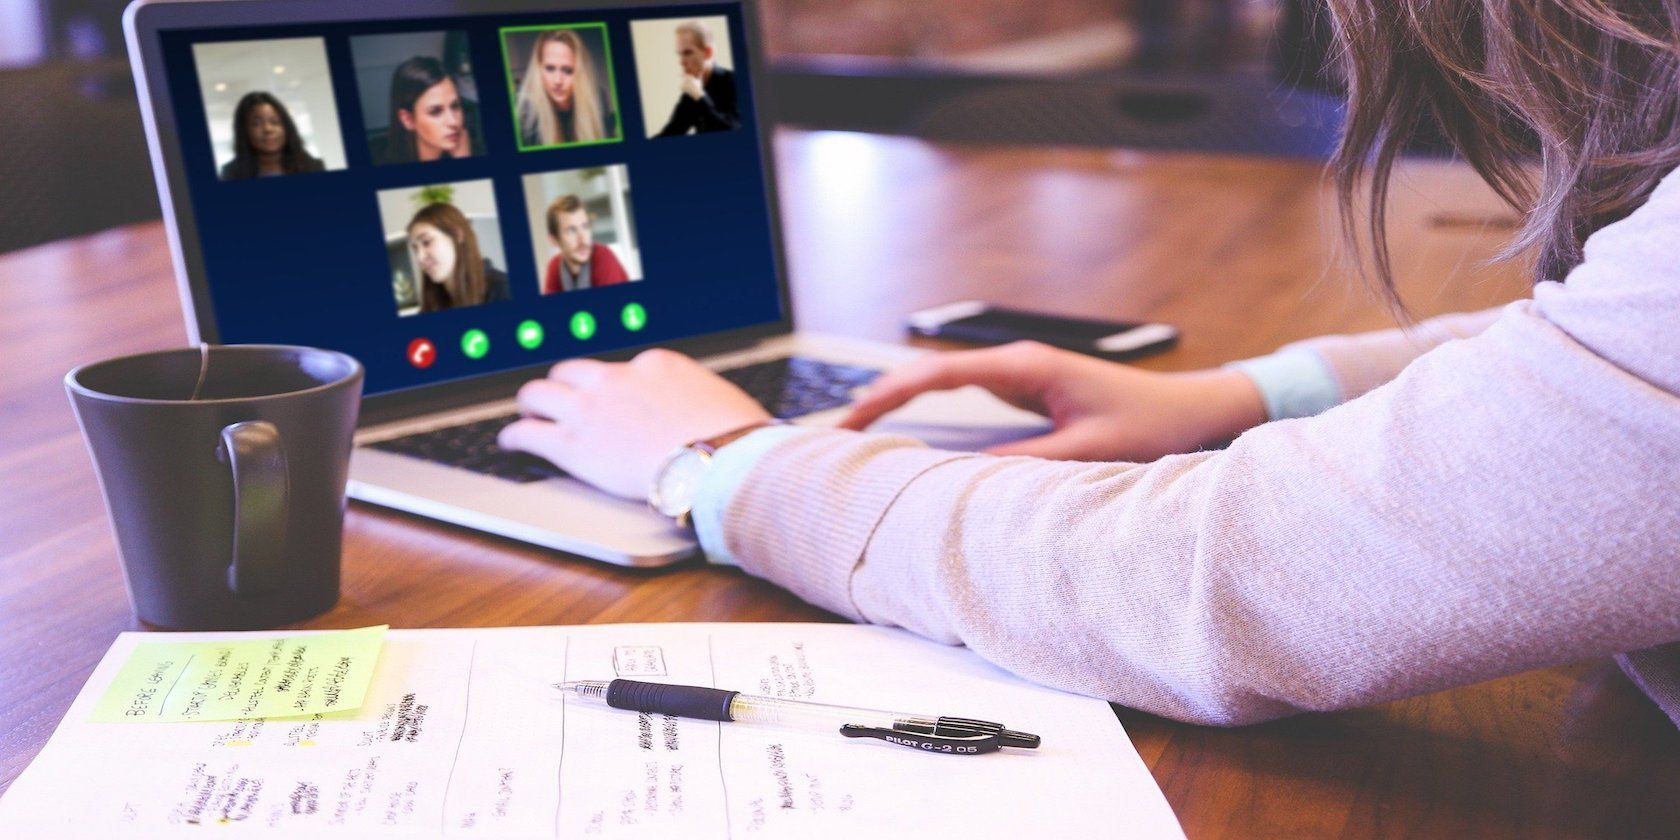 Skype vs. Zoom: Which Video Calling App Should You Use?